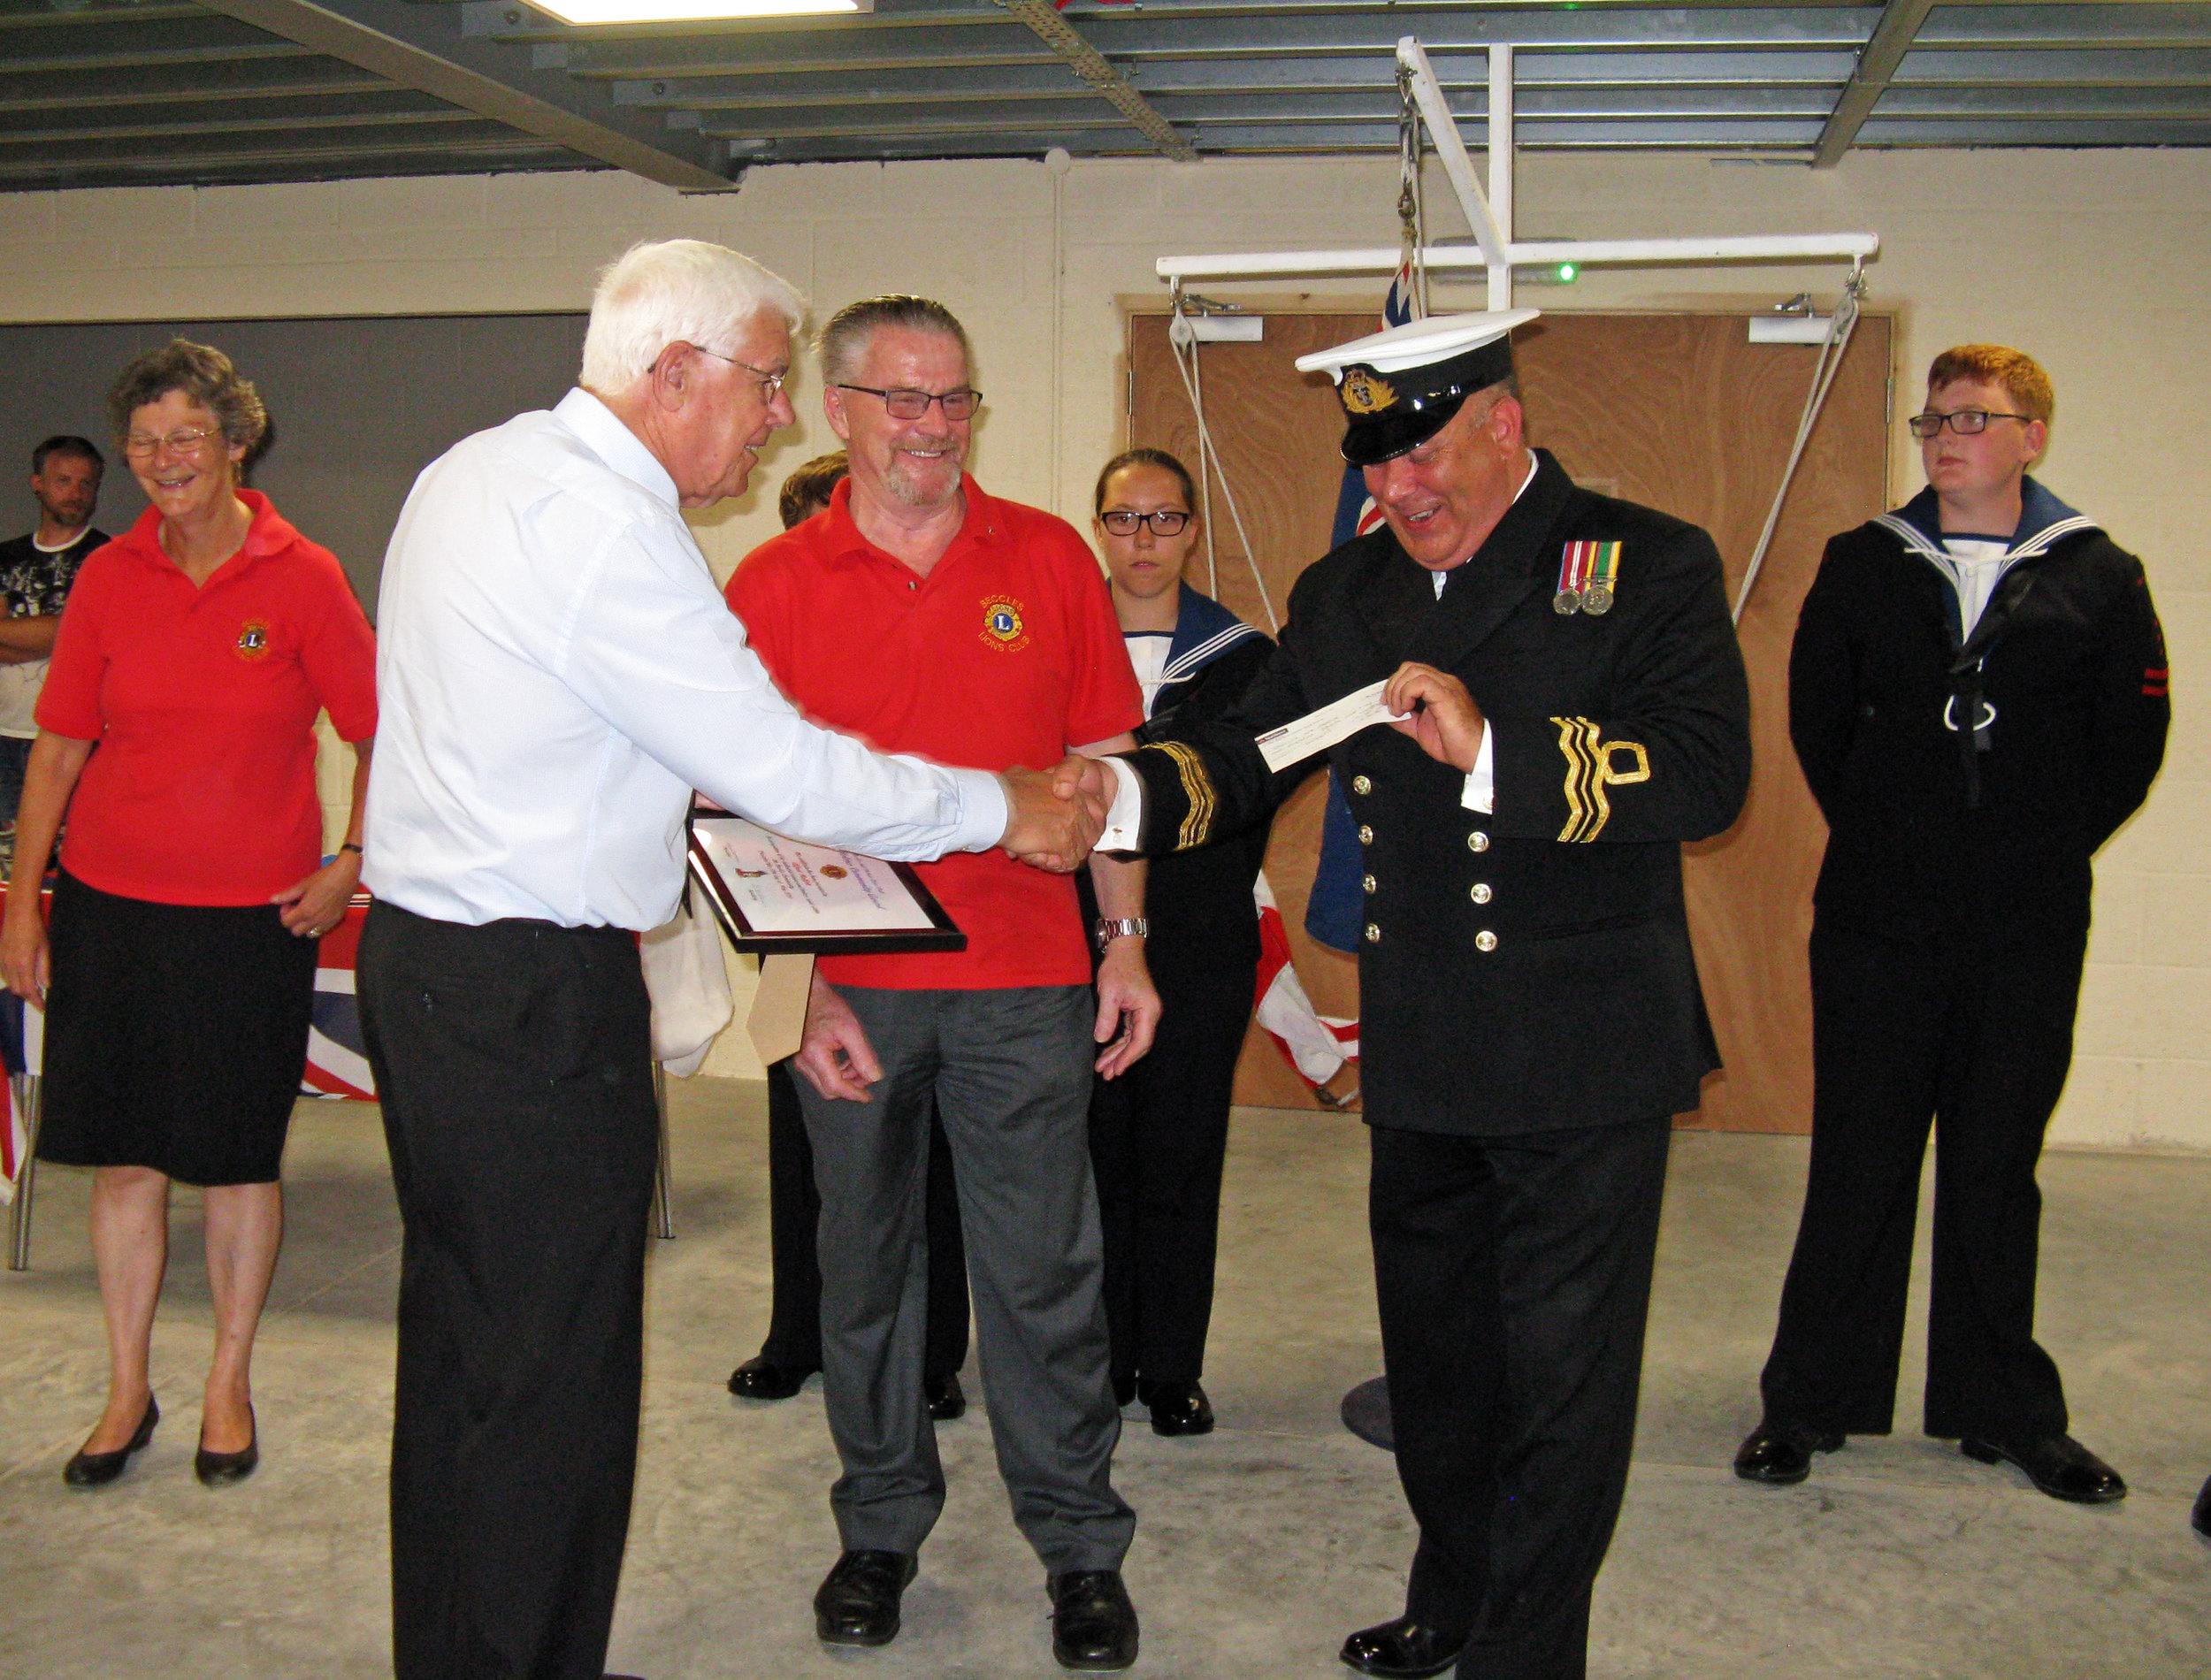 Alf Muffett presenting cheque to TS Brave Commanding Officer Lt.Cdr. Joe Meadows RNR.